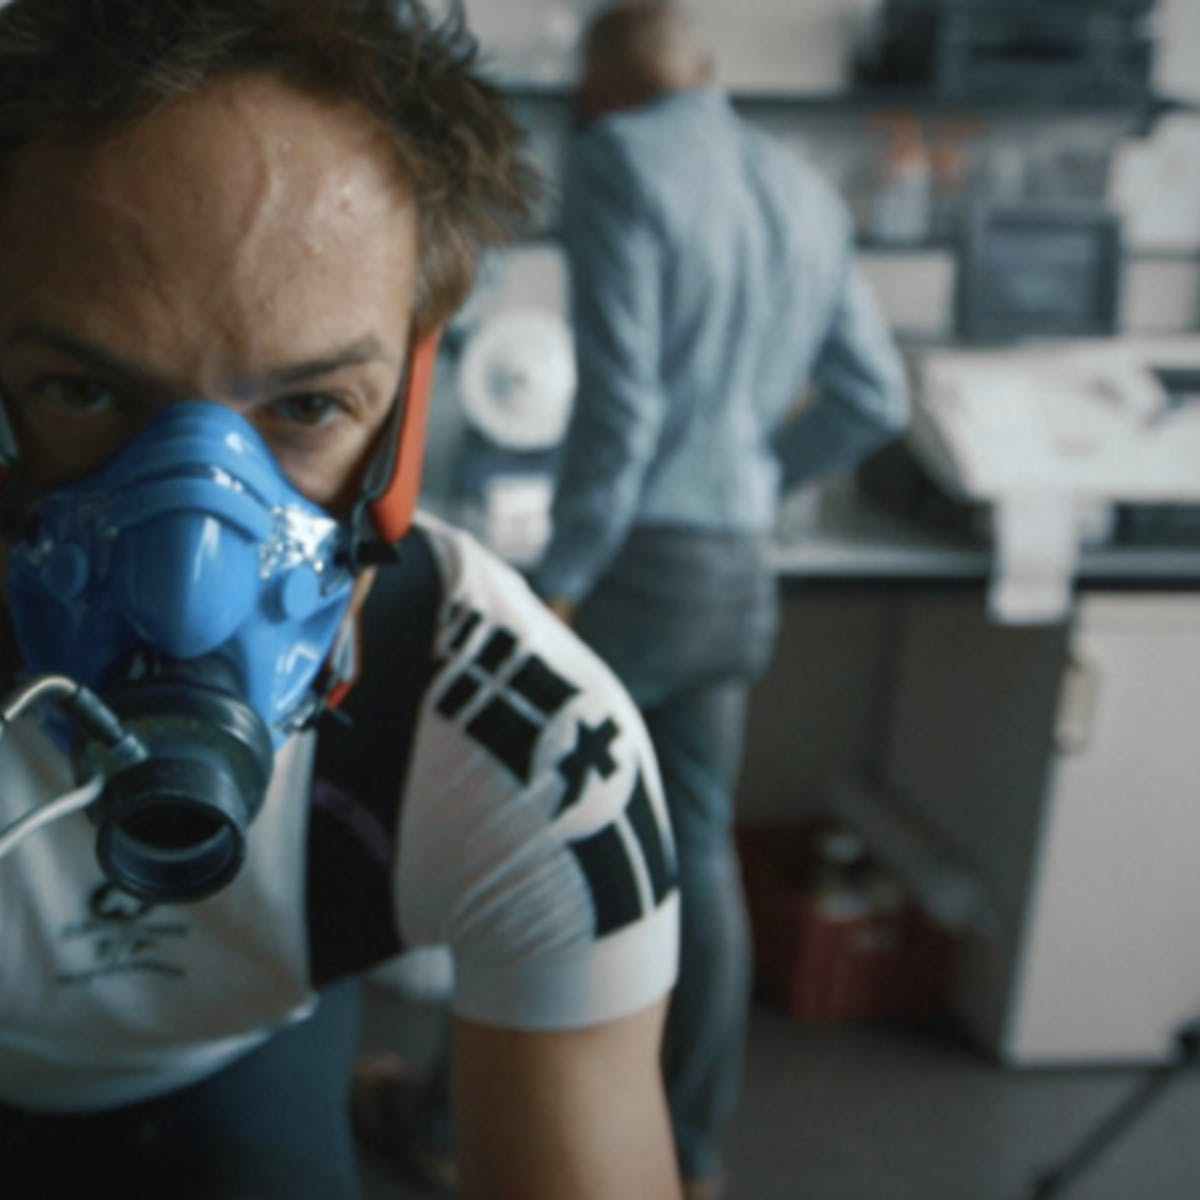 Netflix Doc 'Icarus' Revisits the Chemistry of Olympic Doping | Inverse